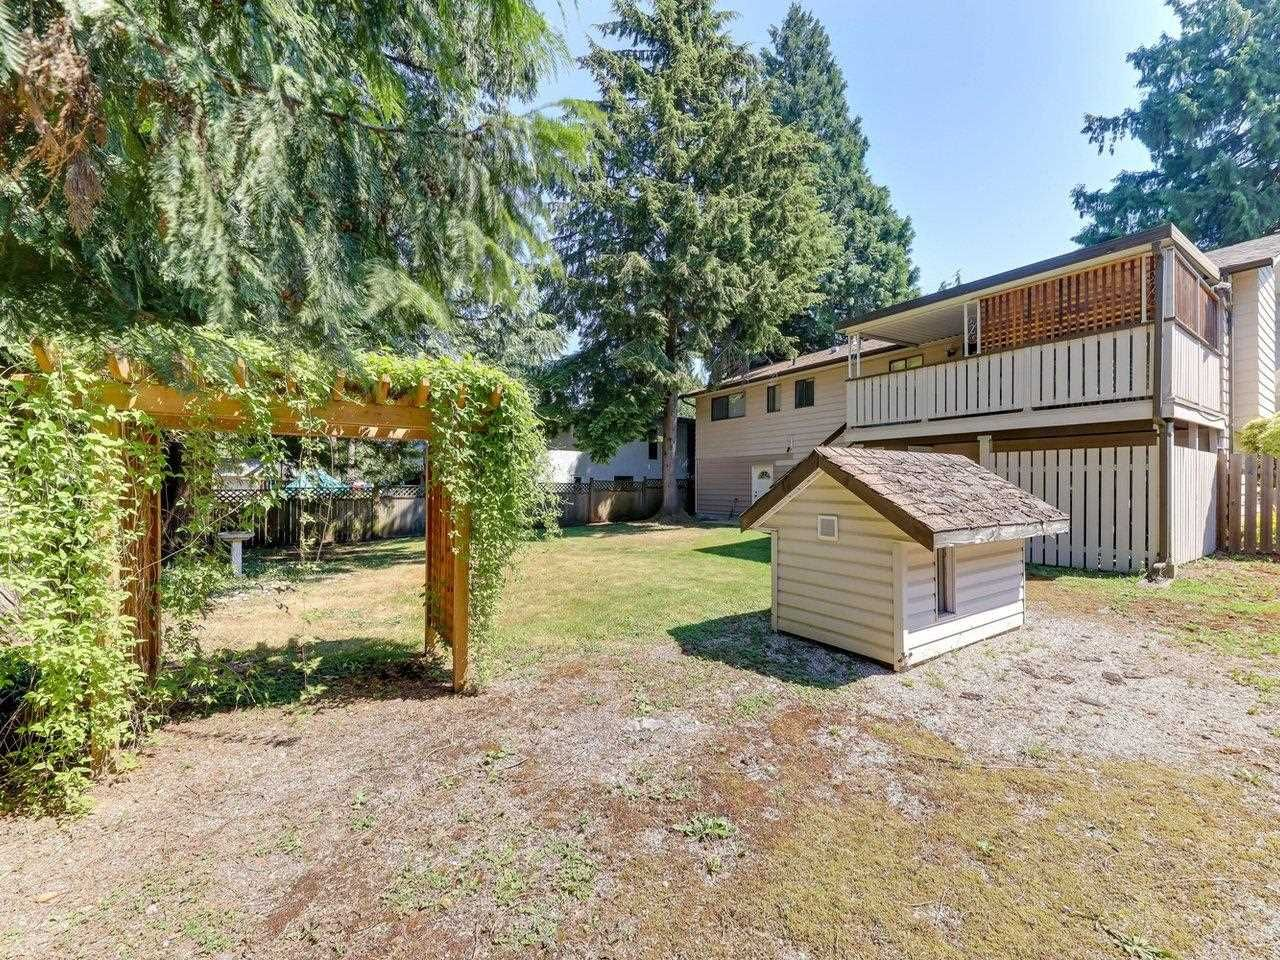 Photo 21: Photos: 10225 142A Street in Surrey: Whalley House for sale (North Surrey)  : MLS®# R2596966